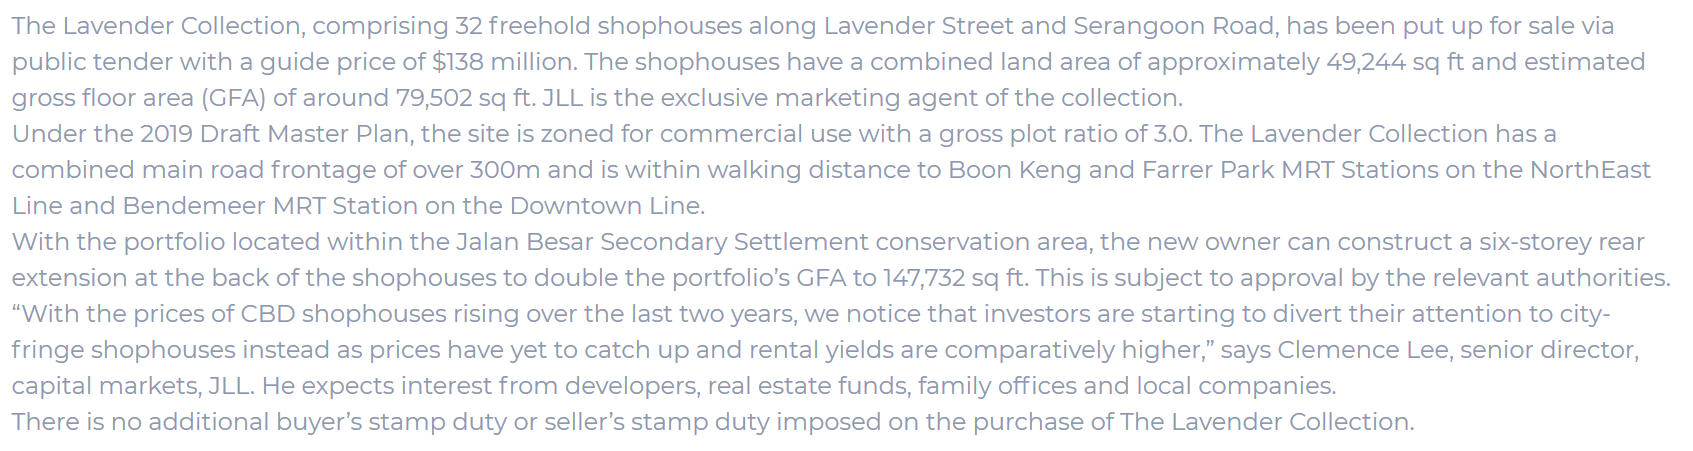 parc-komo-lavendar-collection-overview-text-singapore